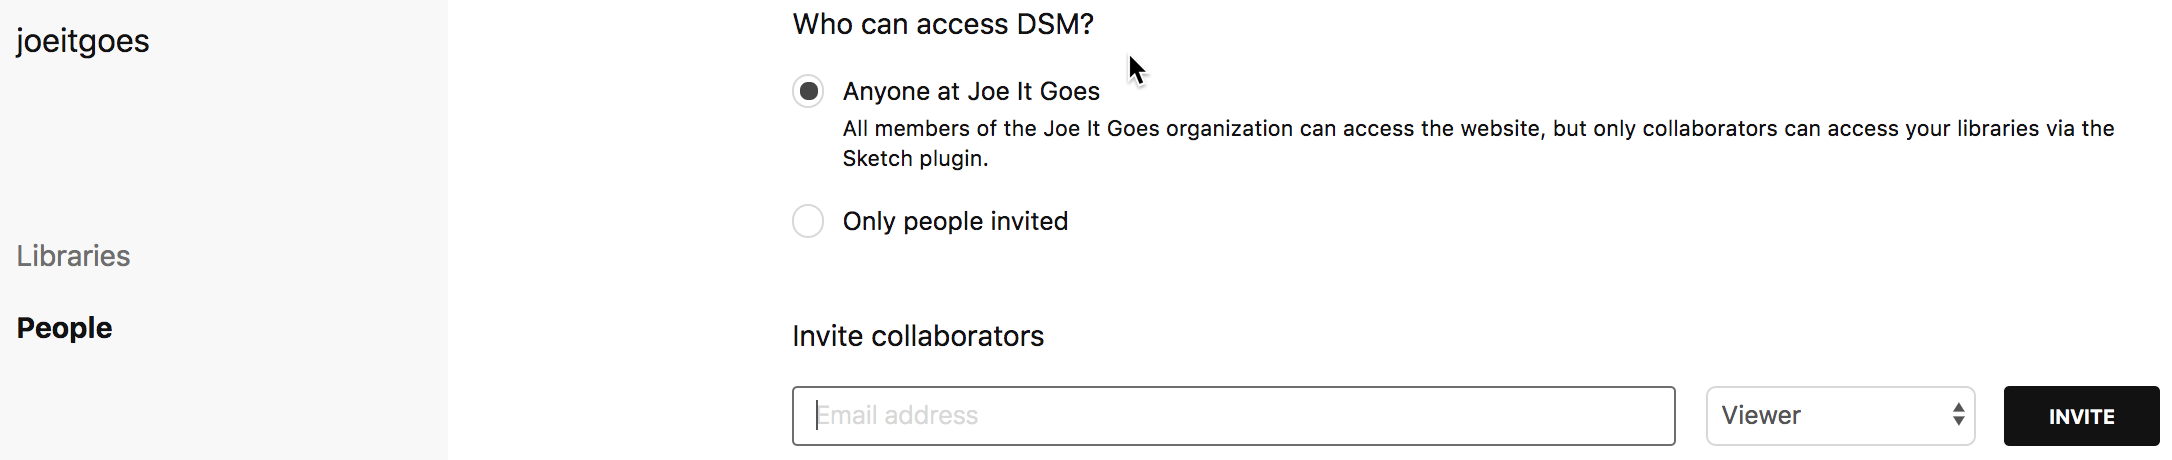 design-system-manager-organization-open-access.png